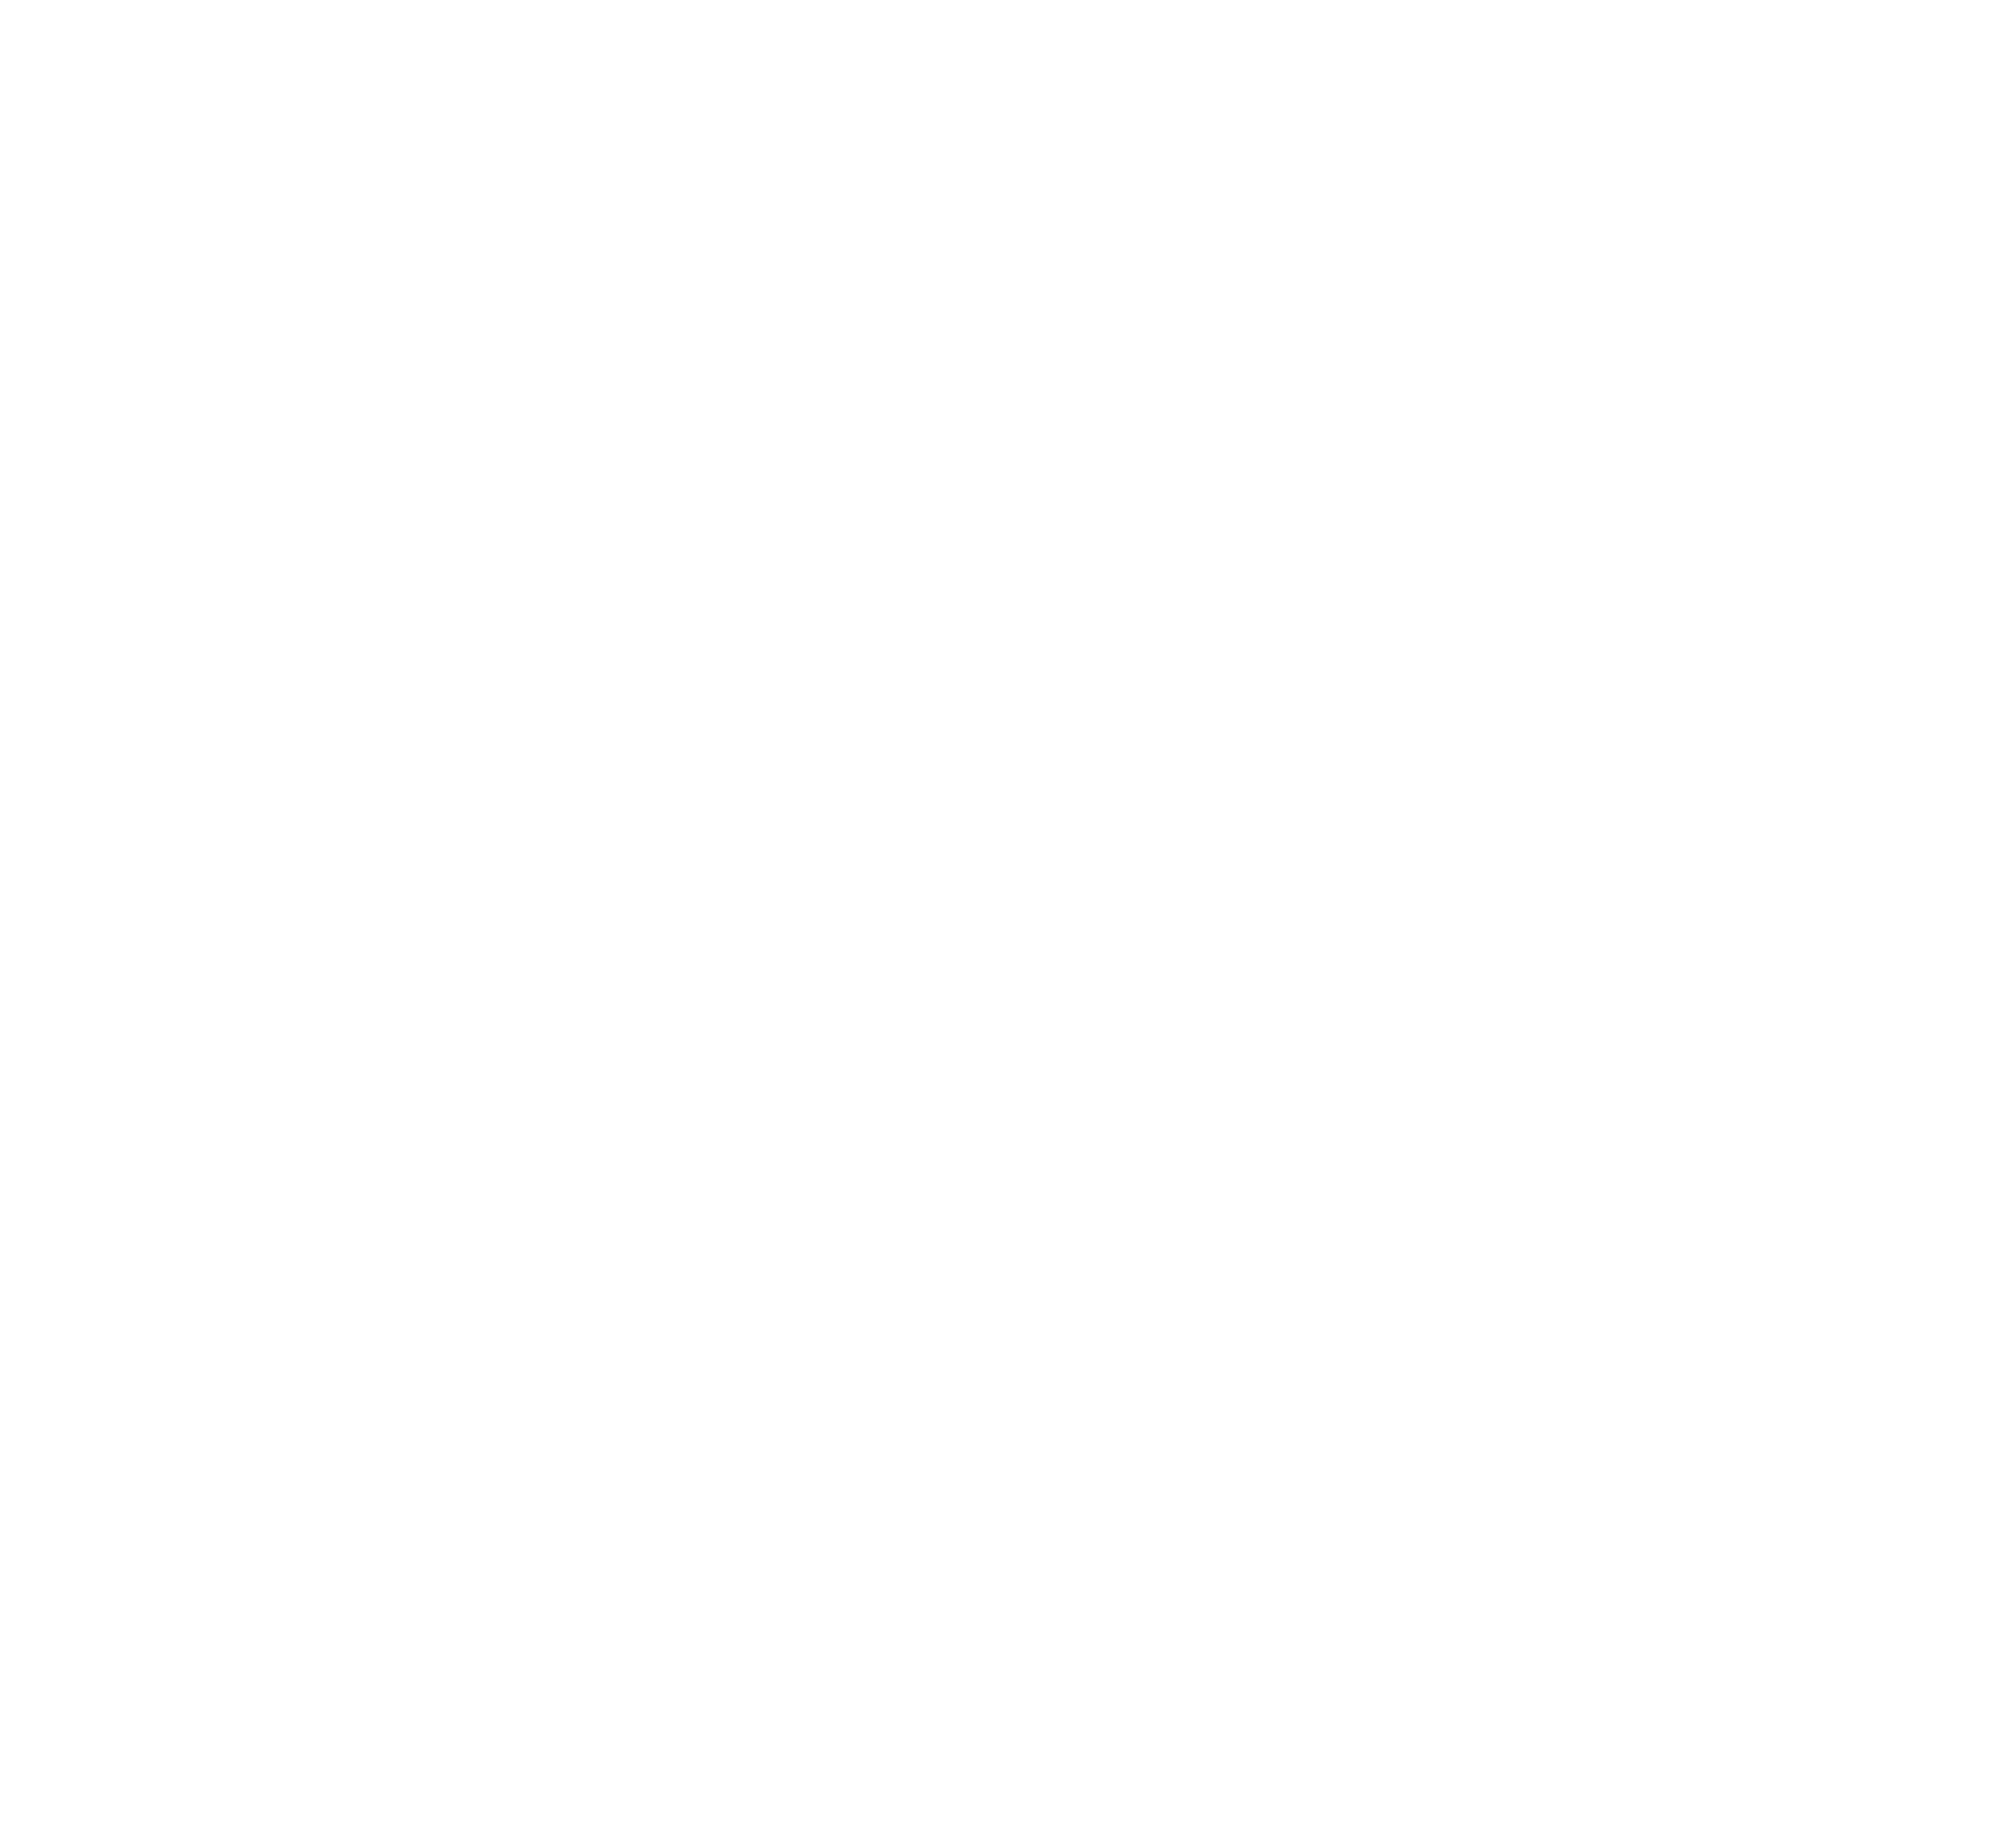 travelbook hotels